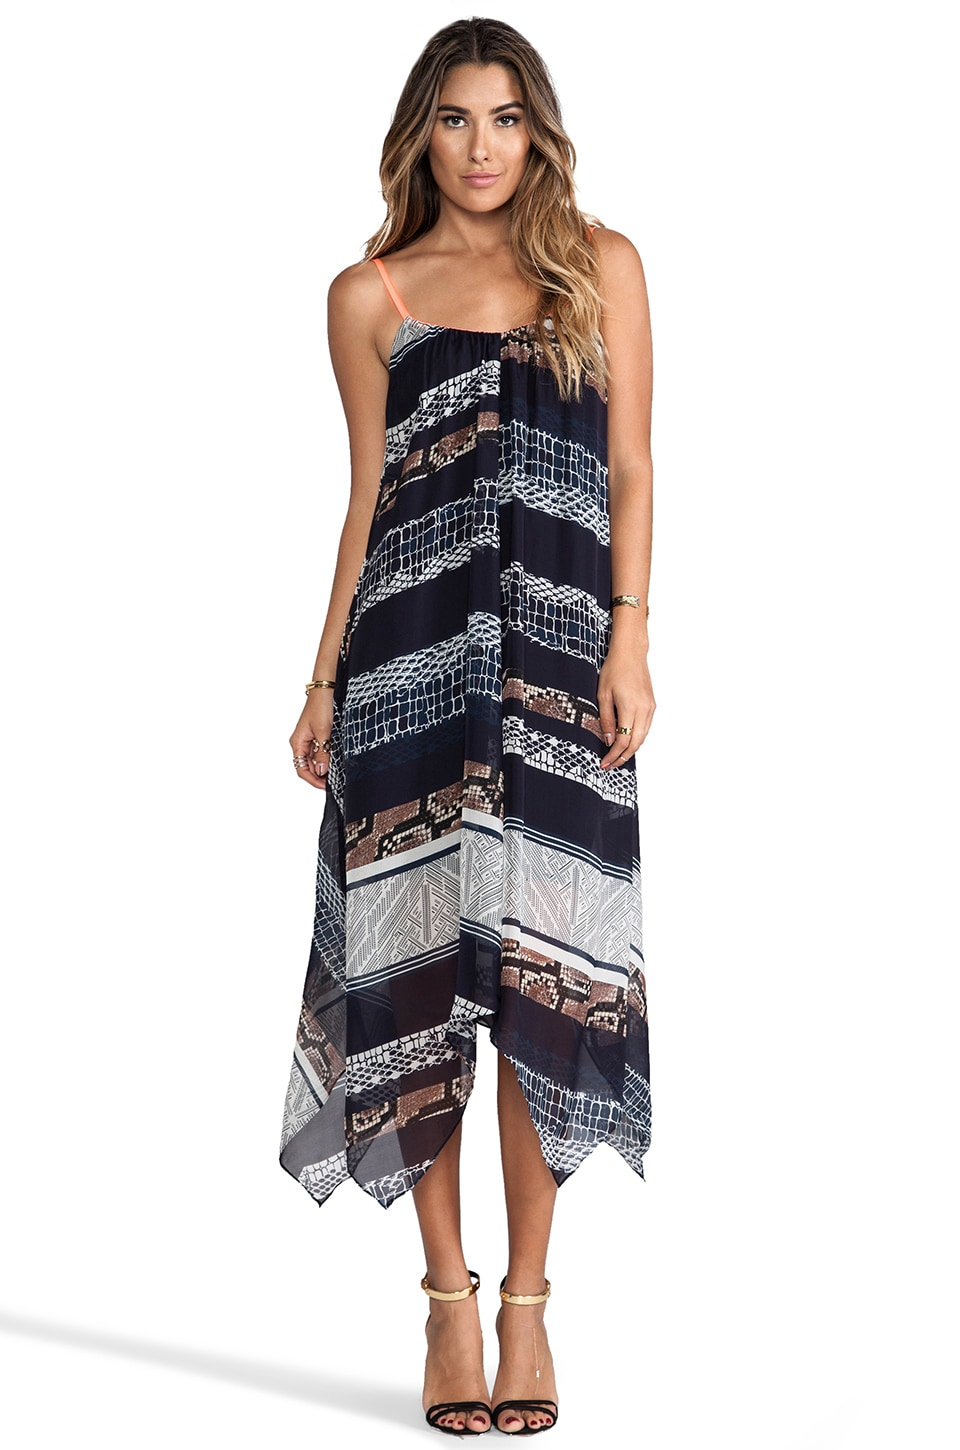 Twelfth Street By Cynthia Vincent Handkerchief Midi Dress in Topanga Canyon